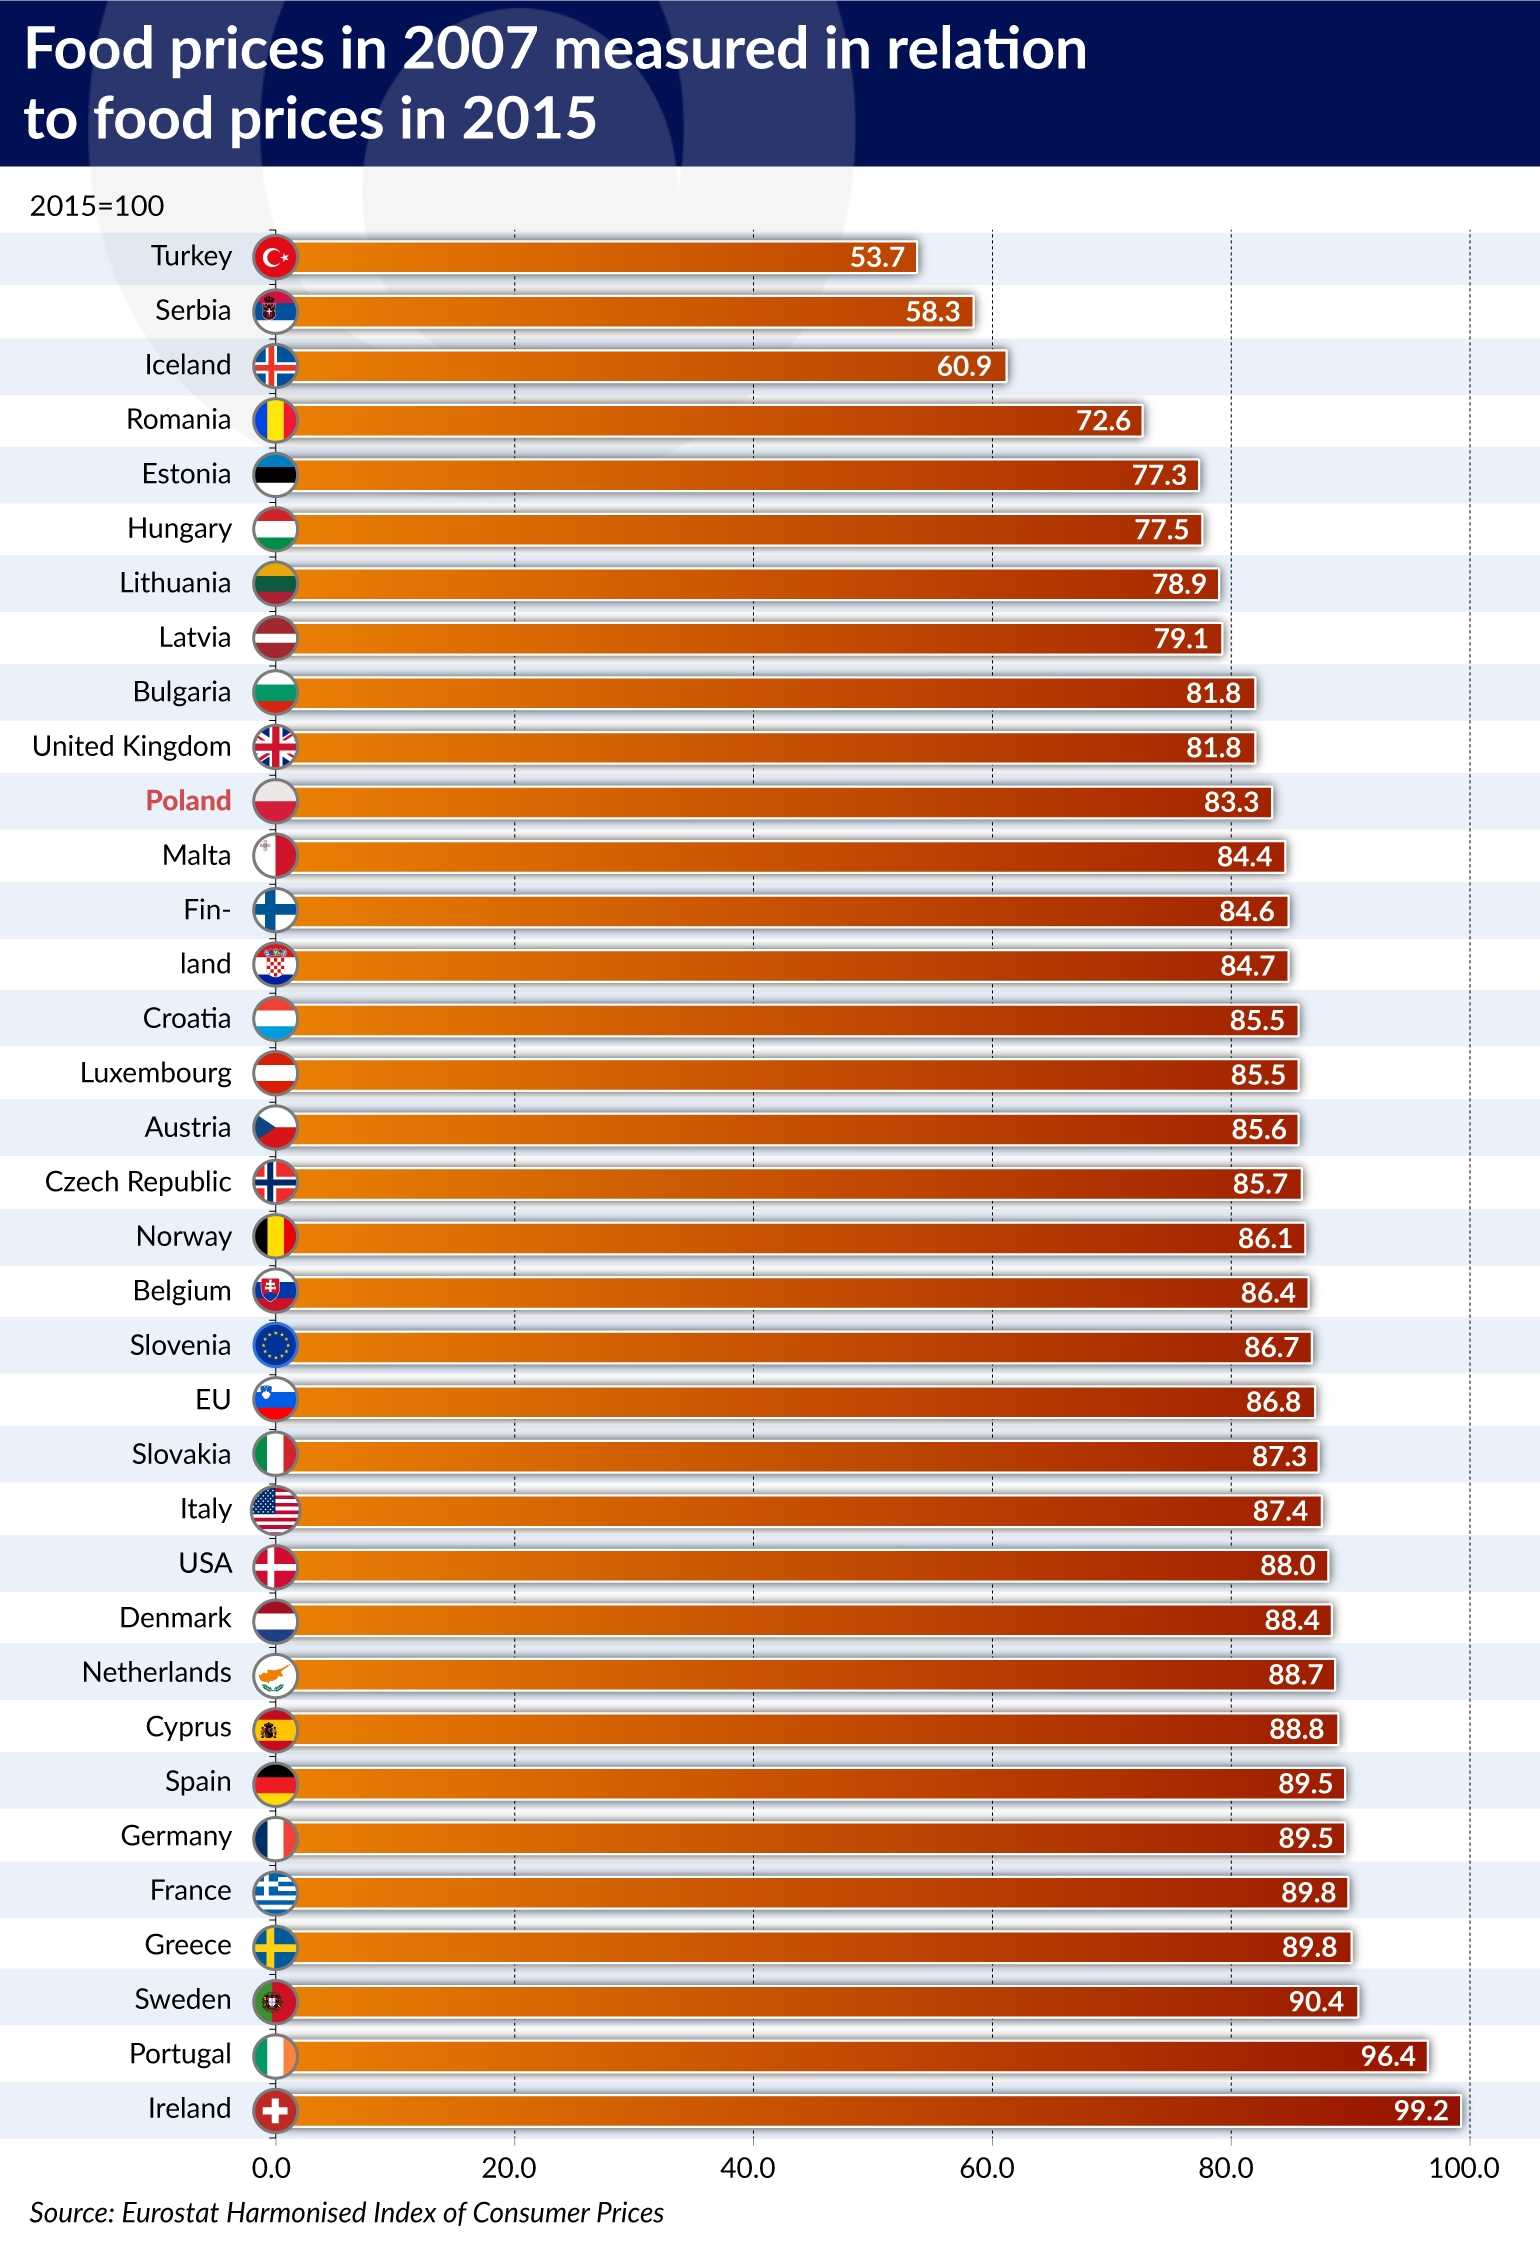 Food In Poland Is Cheaper Than In Other European Countries